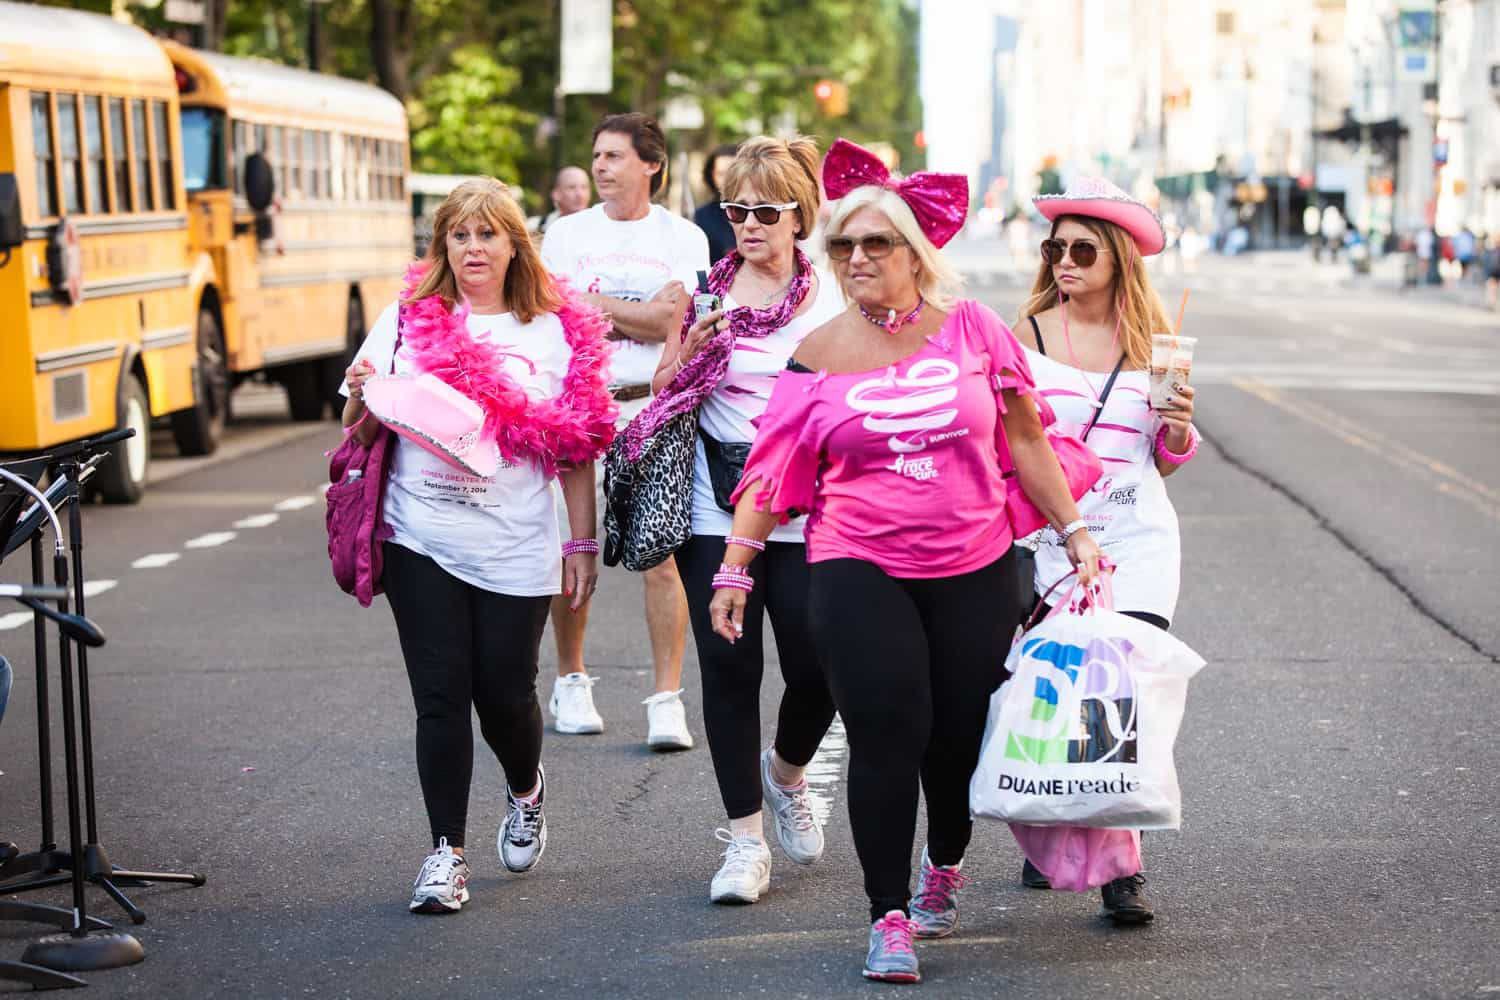 NYC Race for the Cure photos of group of supporters wearing pink outfits